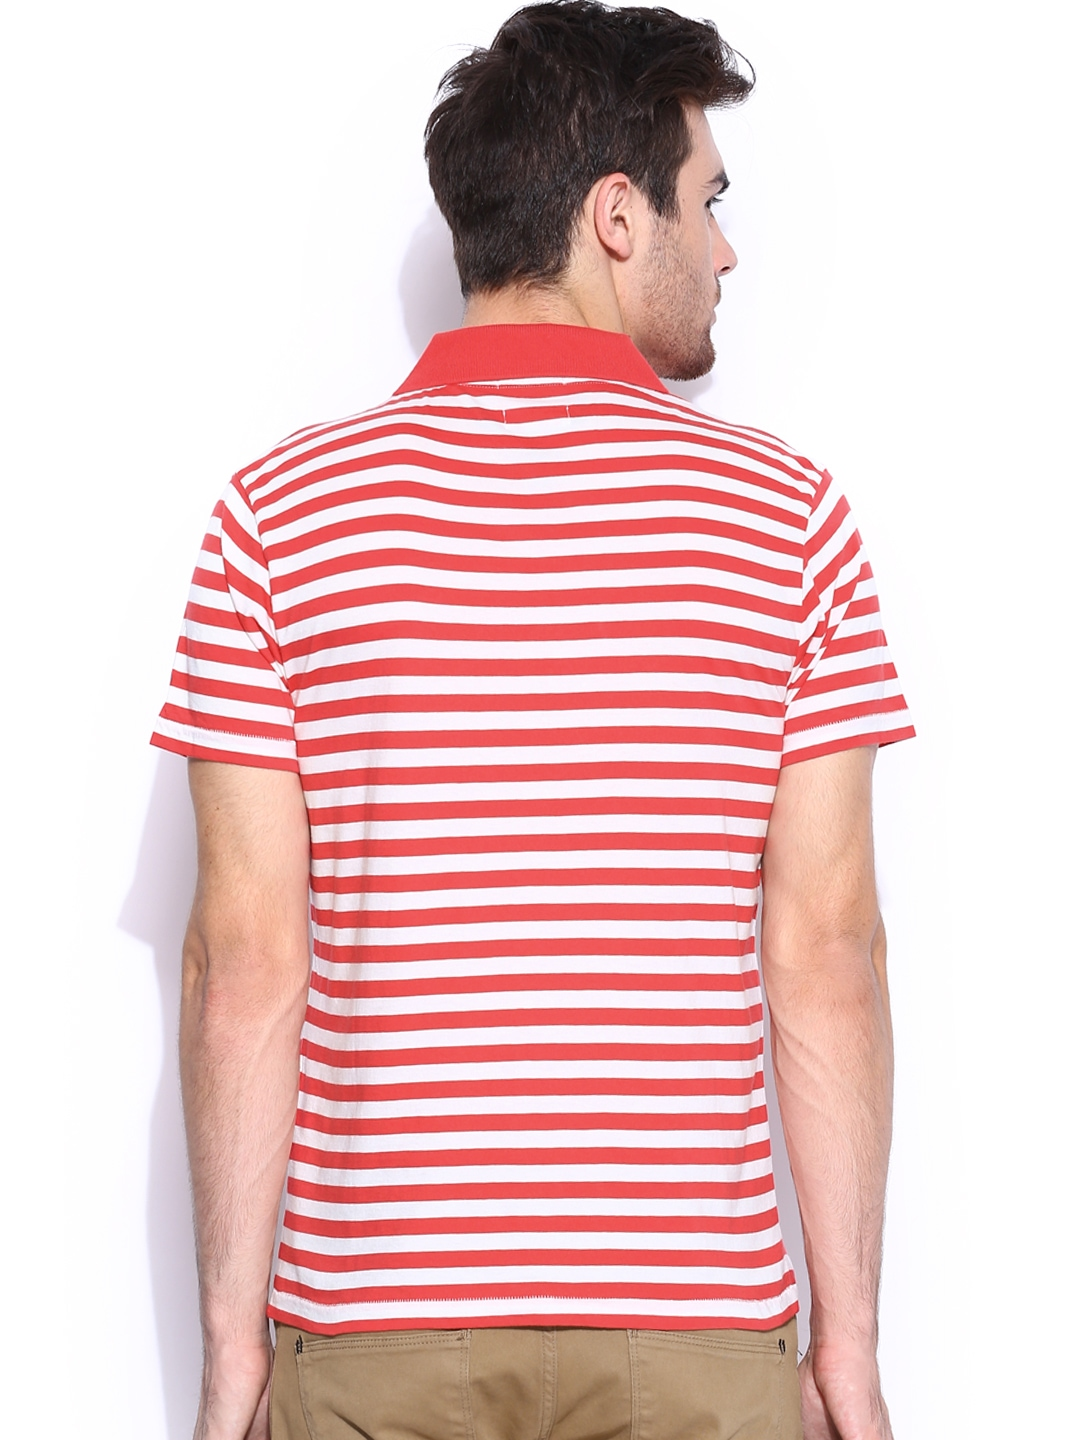 Myntra gant off white red striped polo t shirt 822069 for Red white striped polo shirt